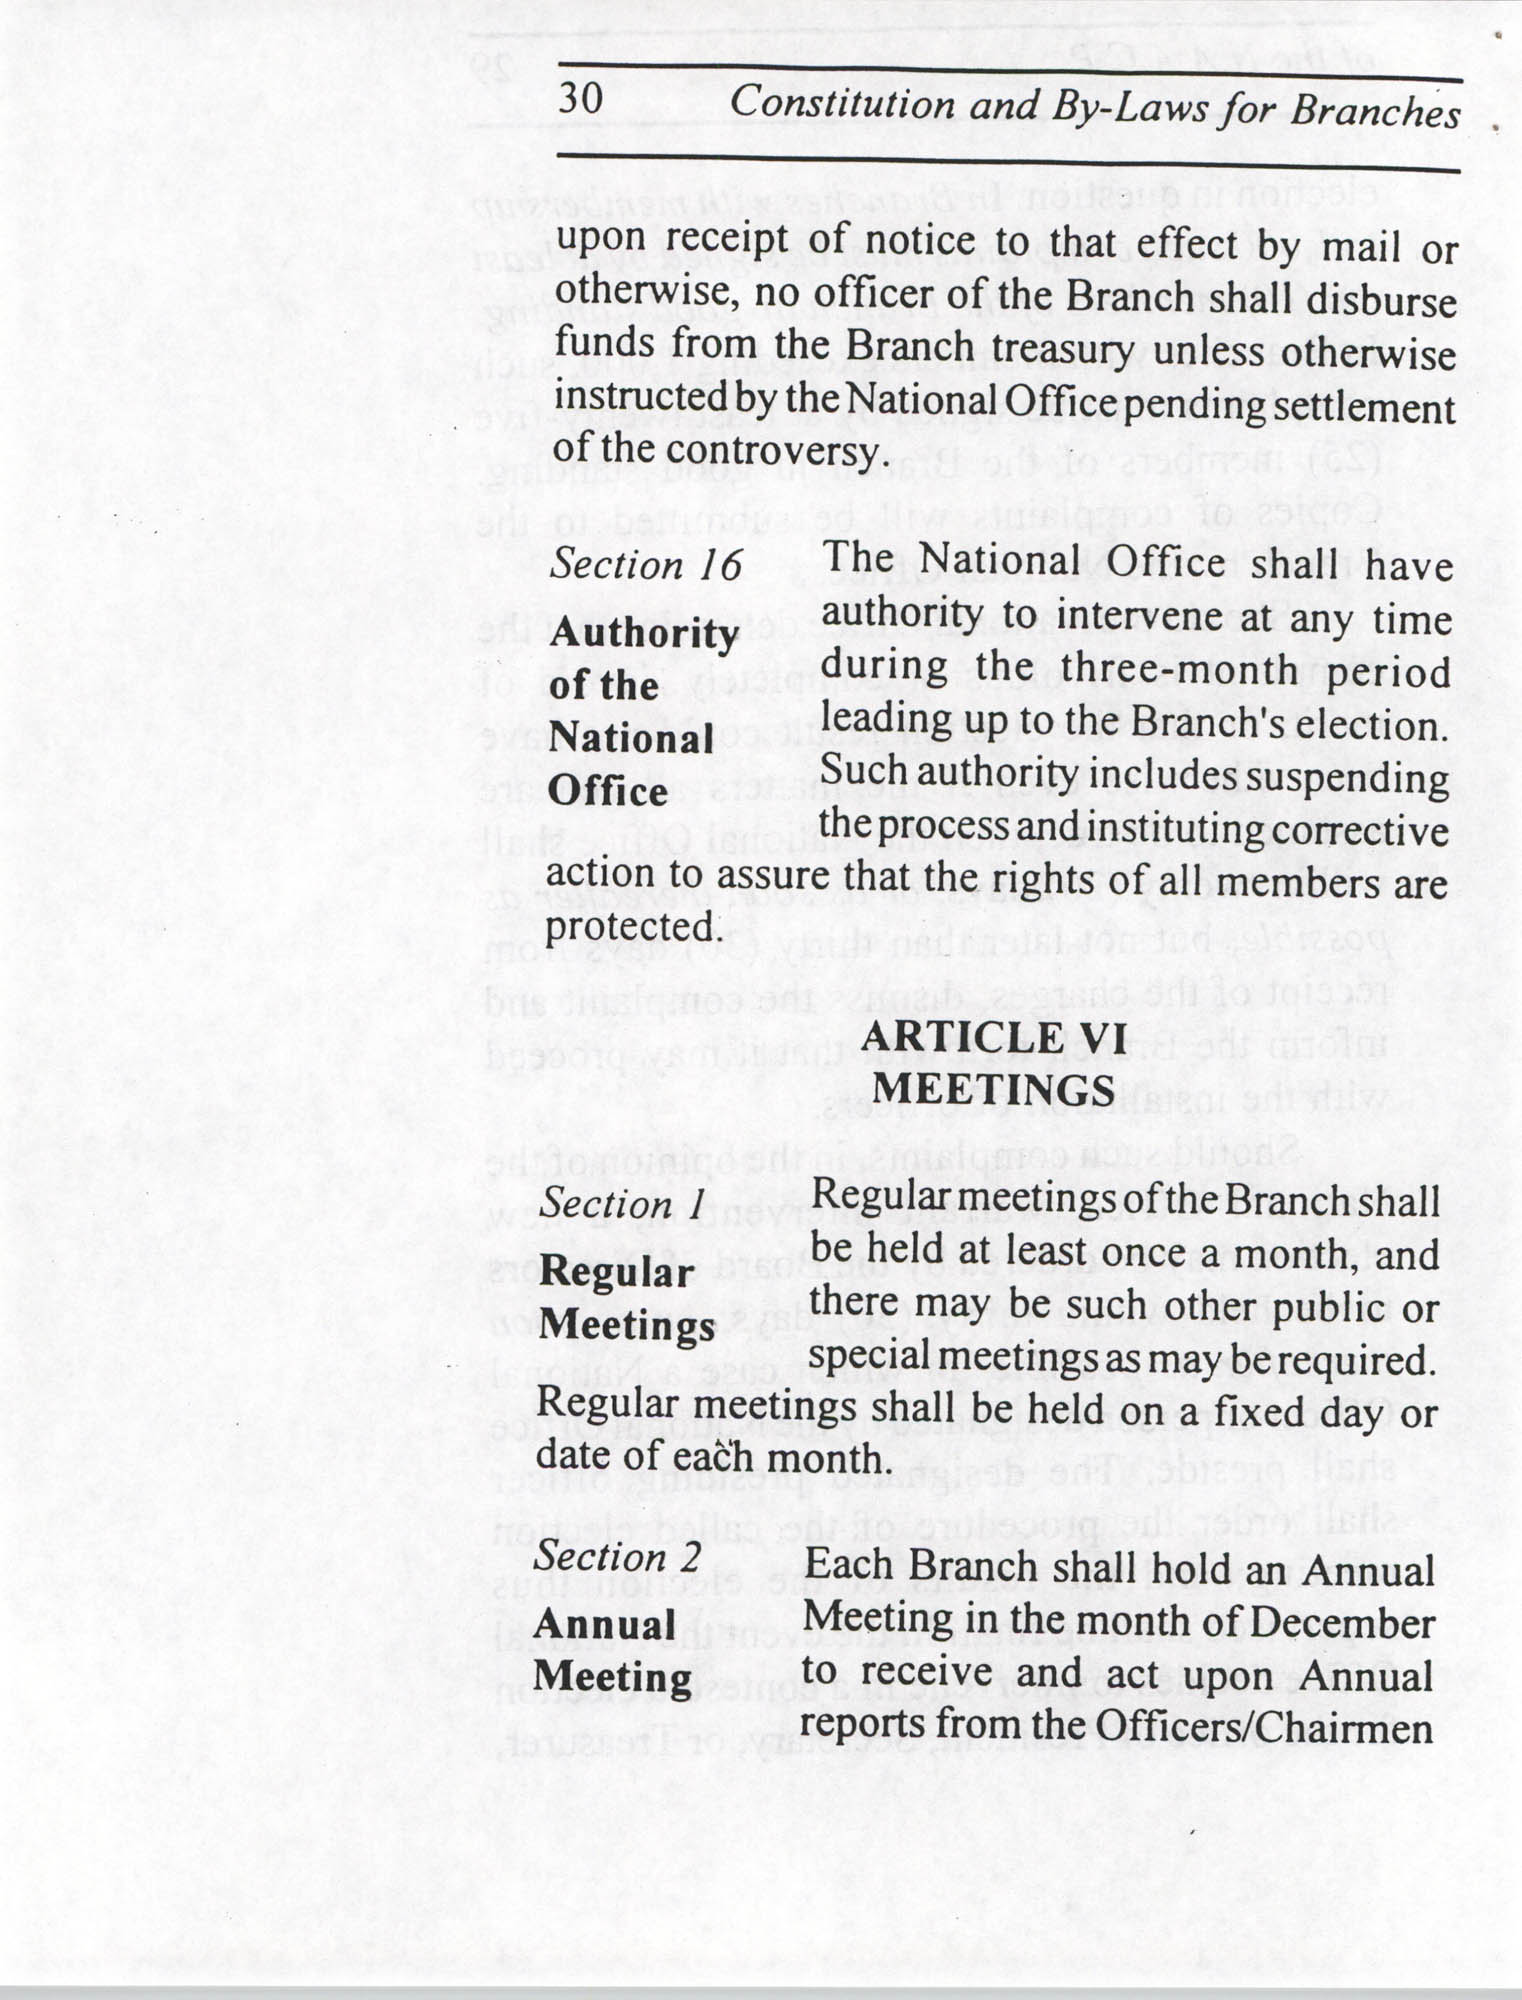 Constitution and By-Laws for Branches of the NAACP, July 1994, Page 30